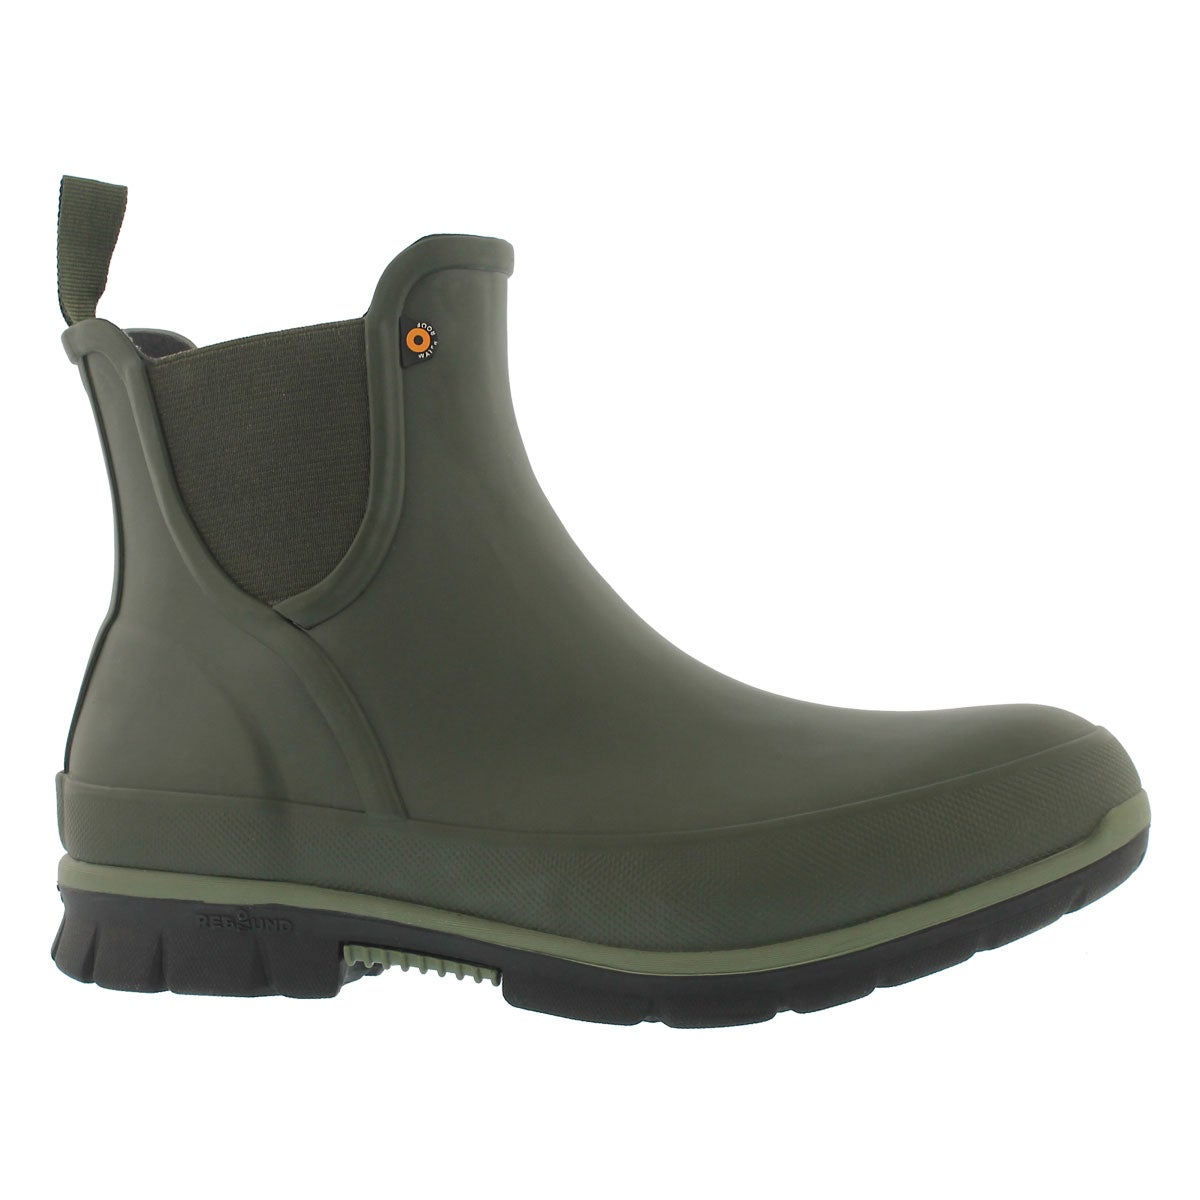 Women's AMANDA dark green waterproof lowrain boots